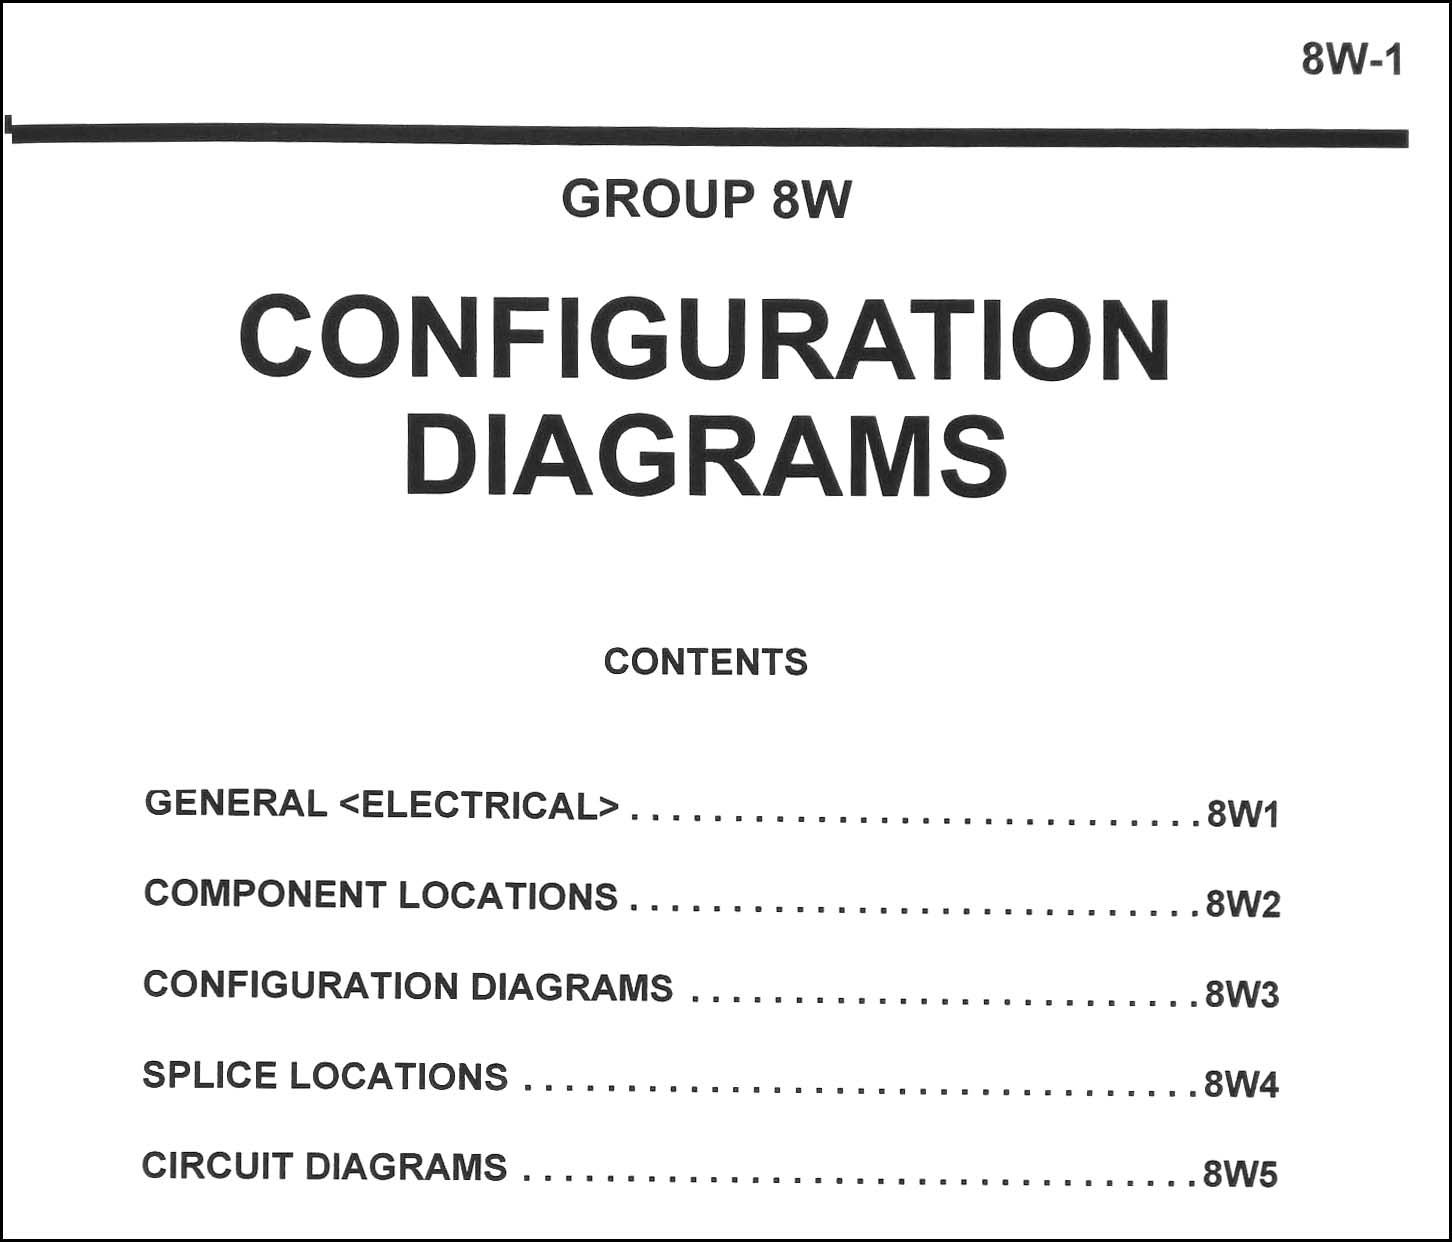 2005 Chrysler Sebring Dodge Stratus Coupe Wiring Diagram Manual Original 1958 Table Of Contents Page